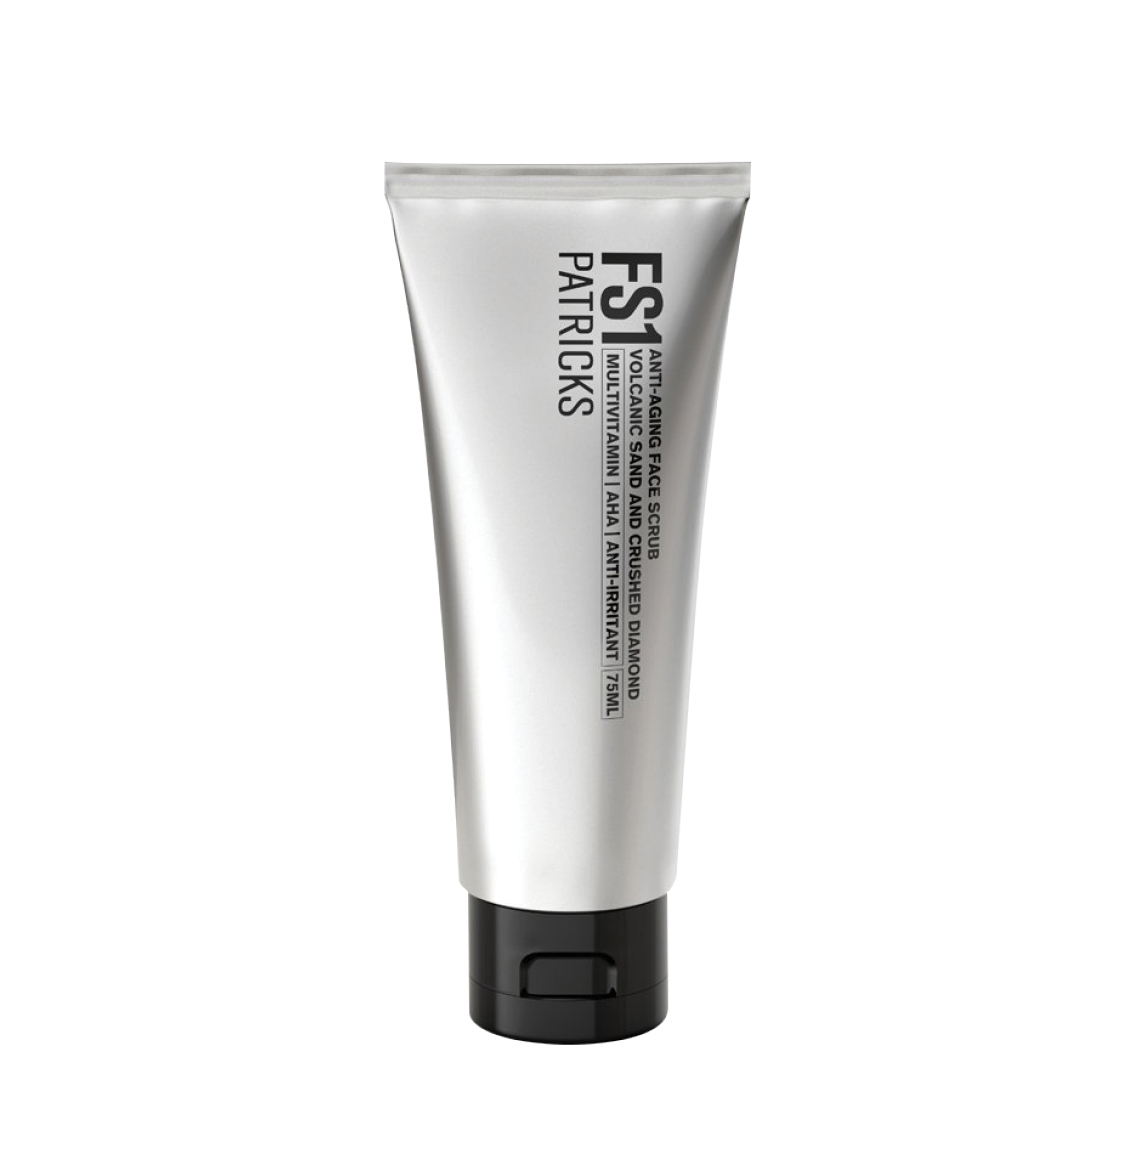 Patricks FS1 Face Scrub Volcanic Sand and Diamond 75ml